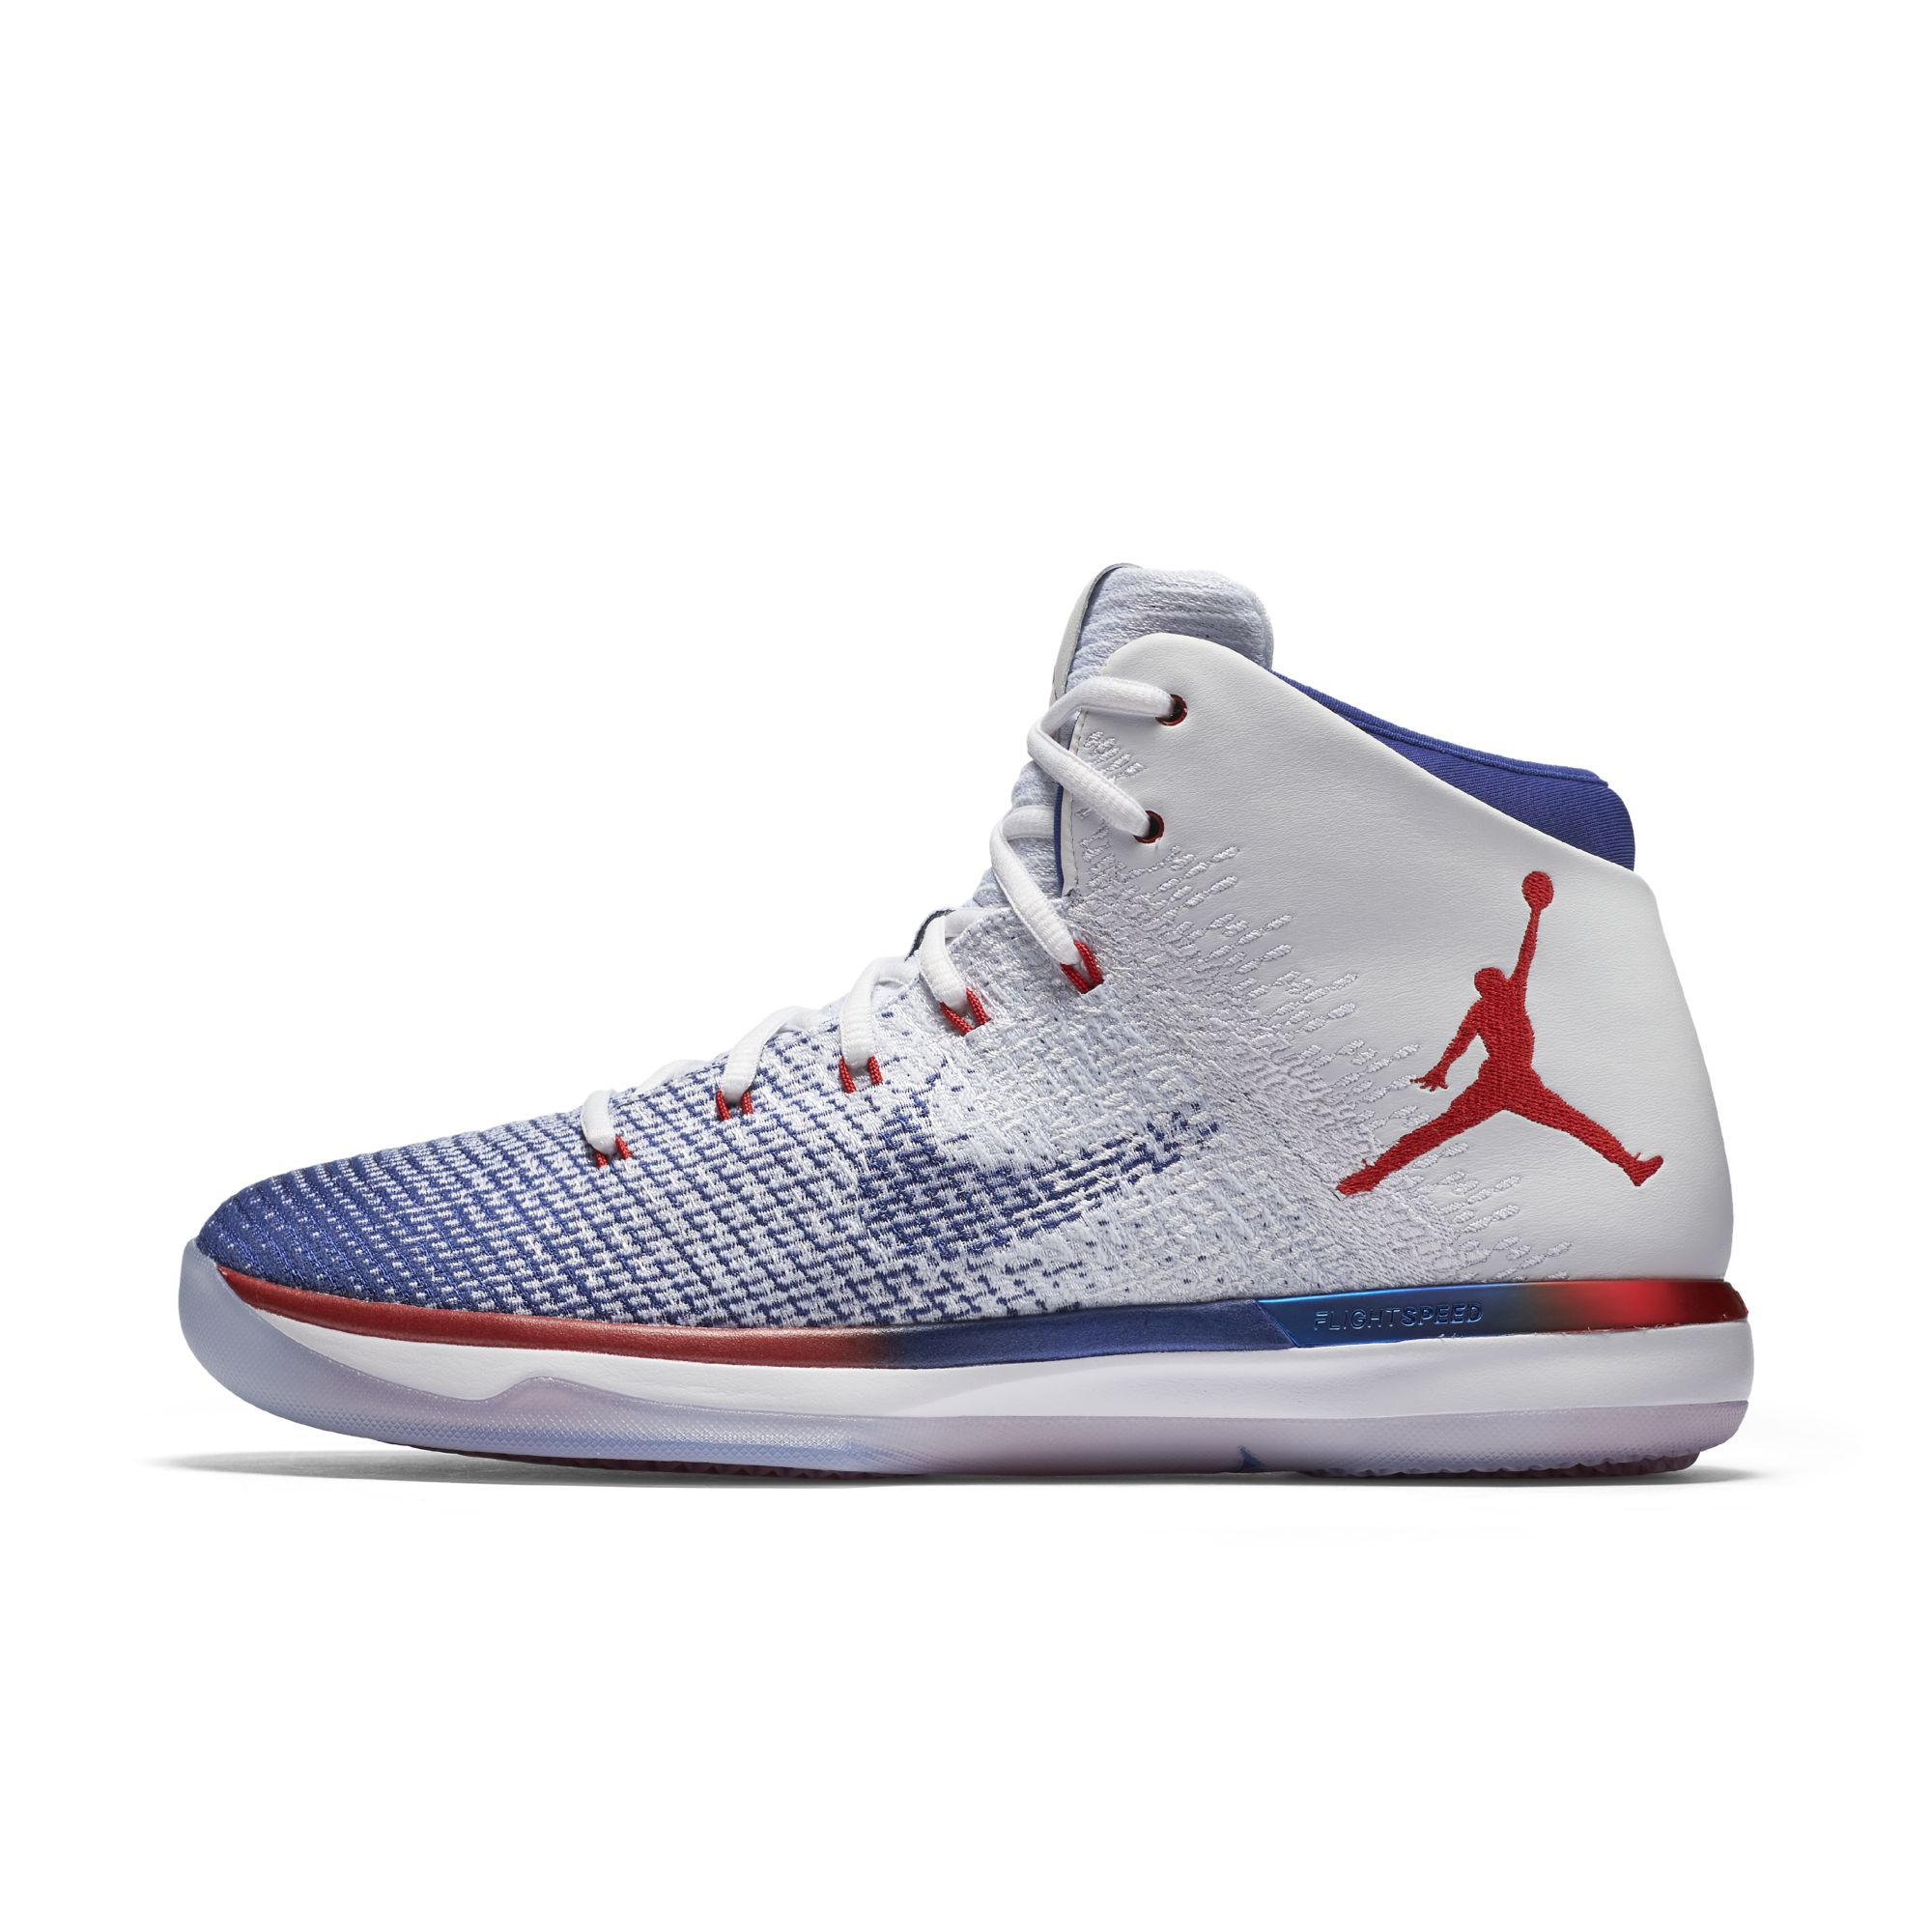 Air Jordan XXXI - USA - Side